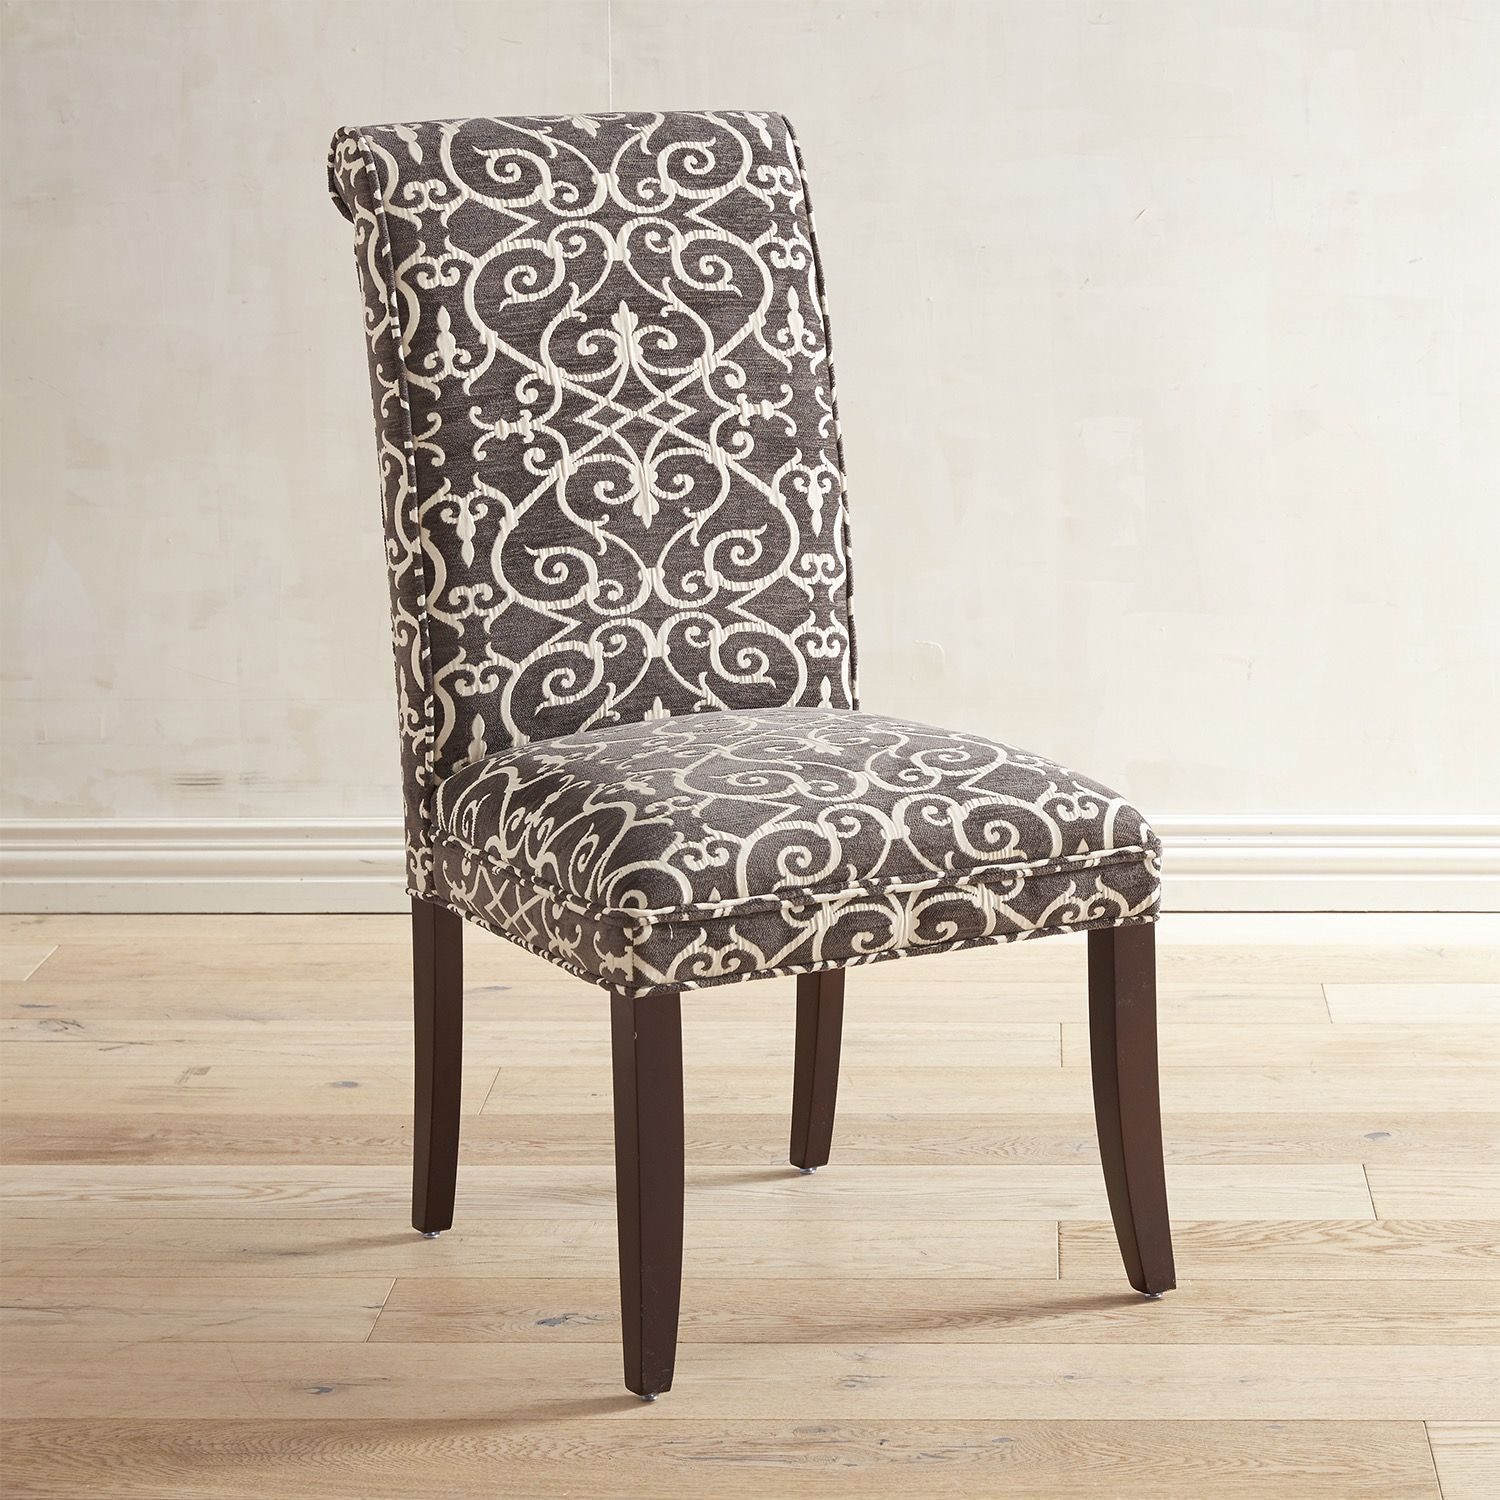 Dining room chairs pier one dining room design ideas dining room chairs pier one endearing angela graphite trellis dining chair products decorating inspiration dzzzfo